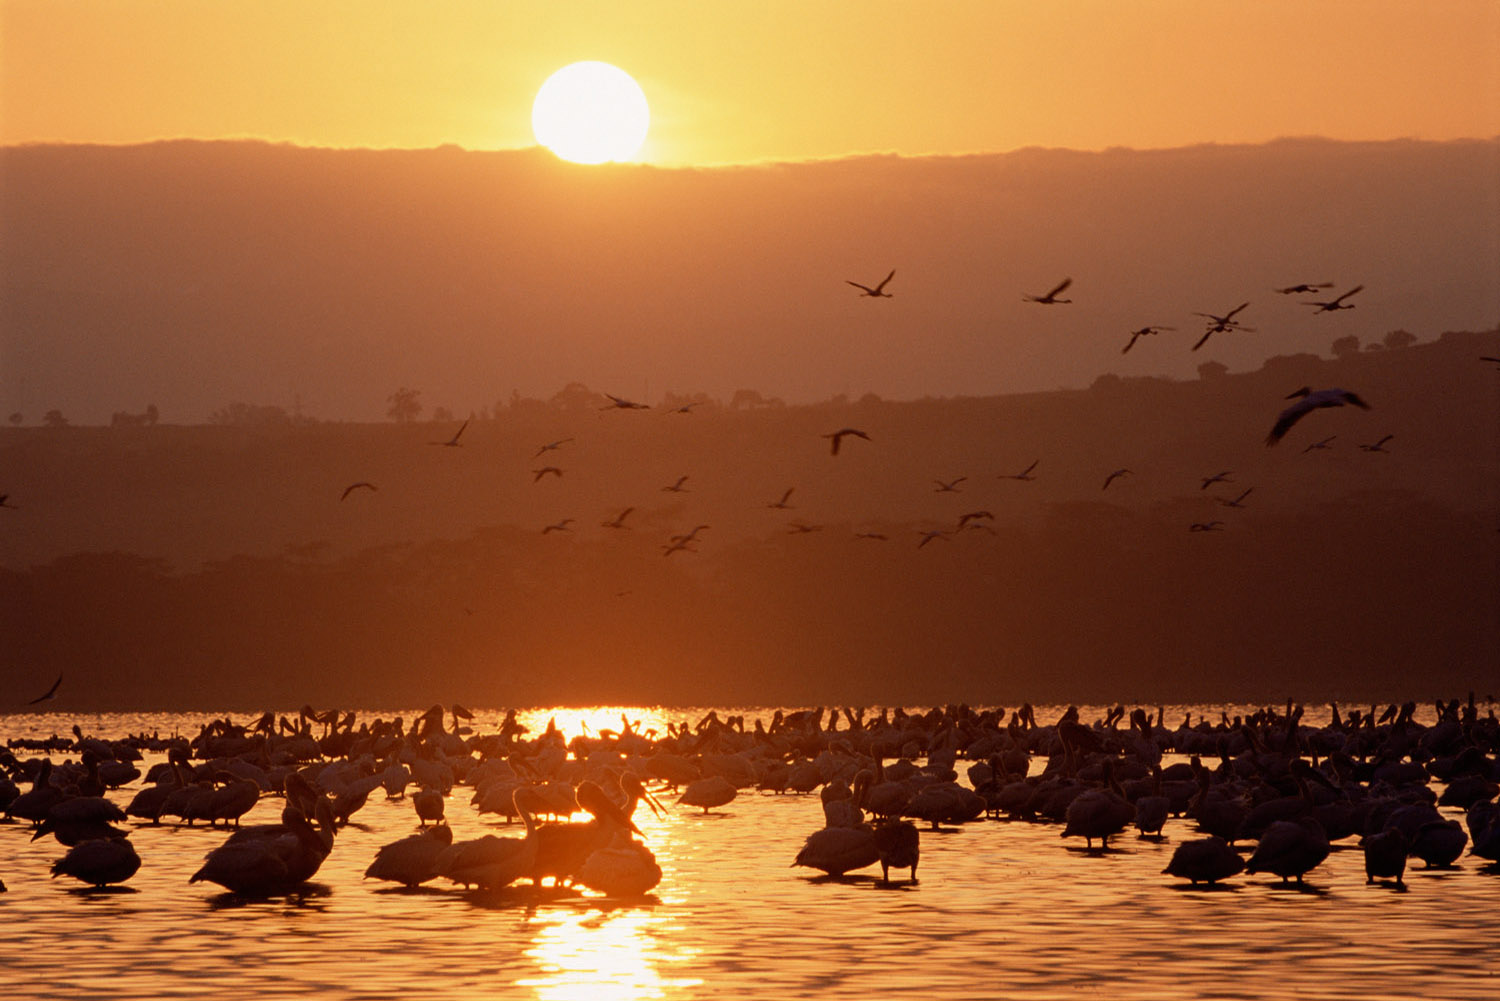 Great white pelicans at sunrise, Lake Nakuru National Park, Kenya